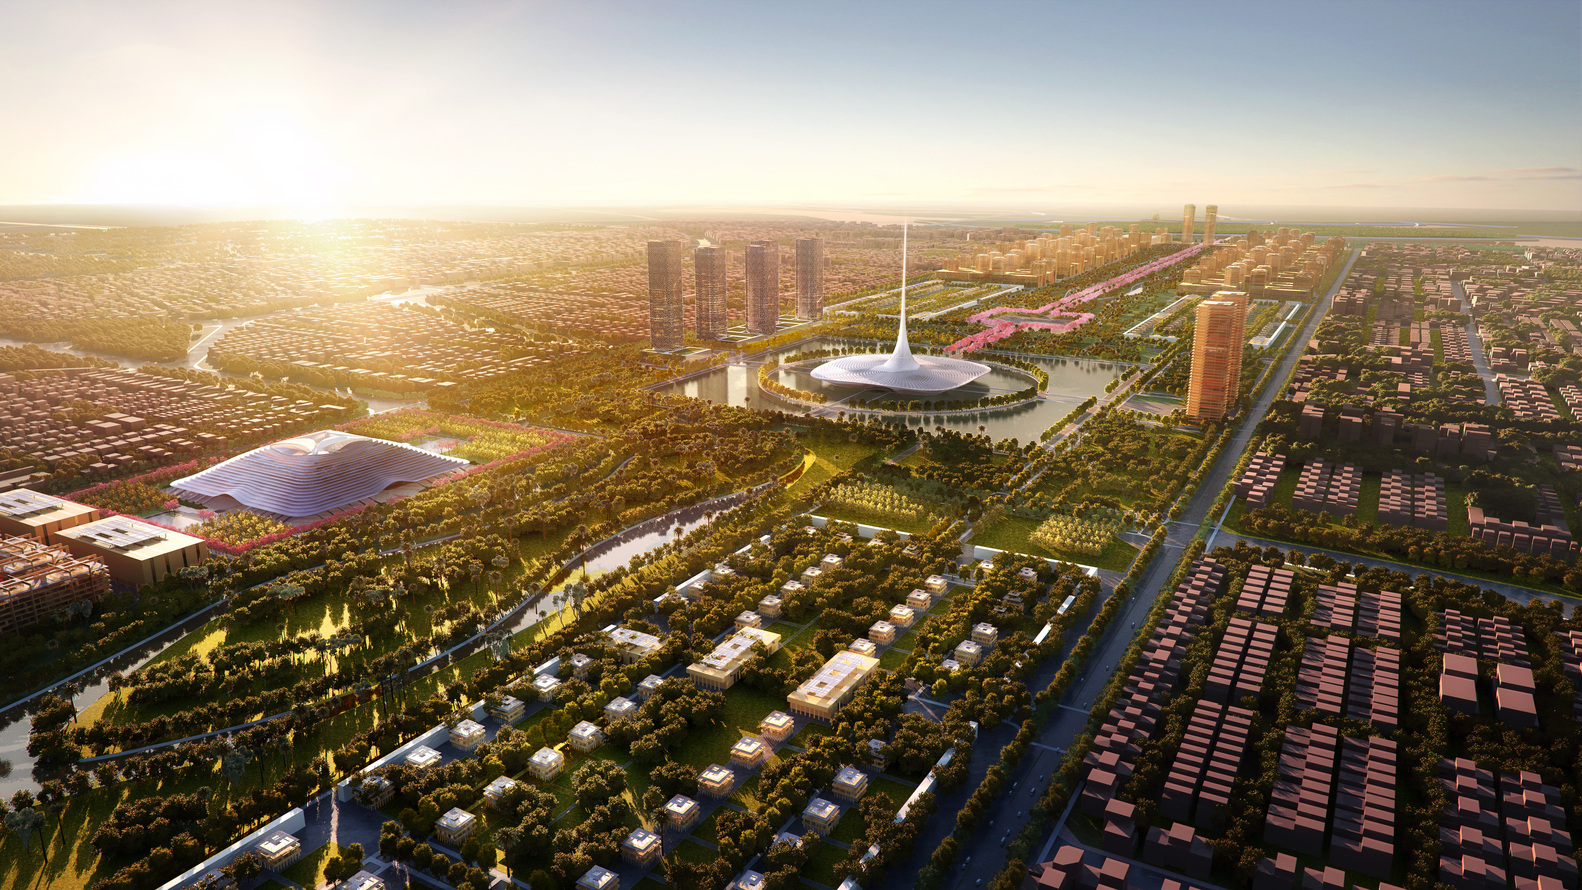 Foster + Partners Designs for Amaravati, the New Capital of Andhra Pradesh - IGS Magazine - 8